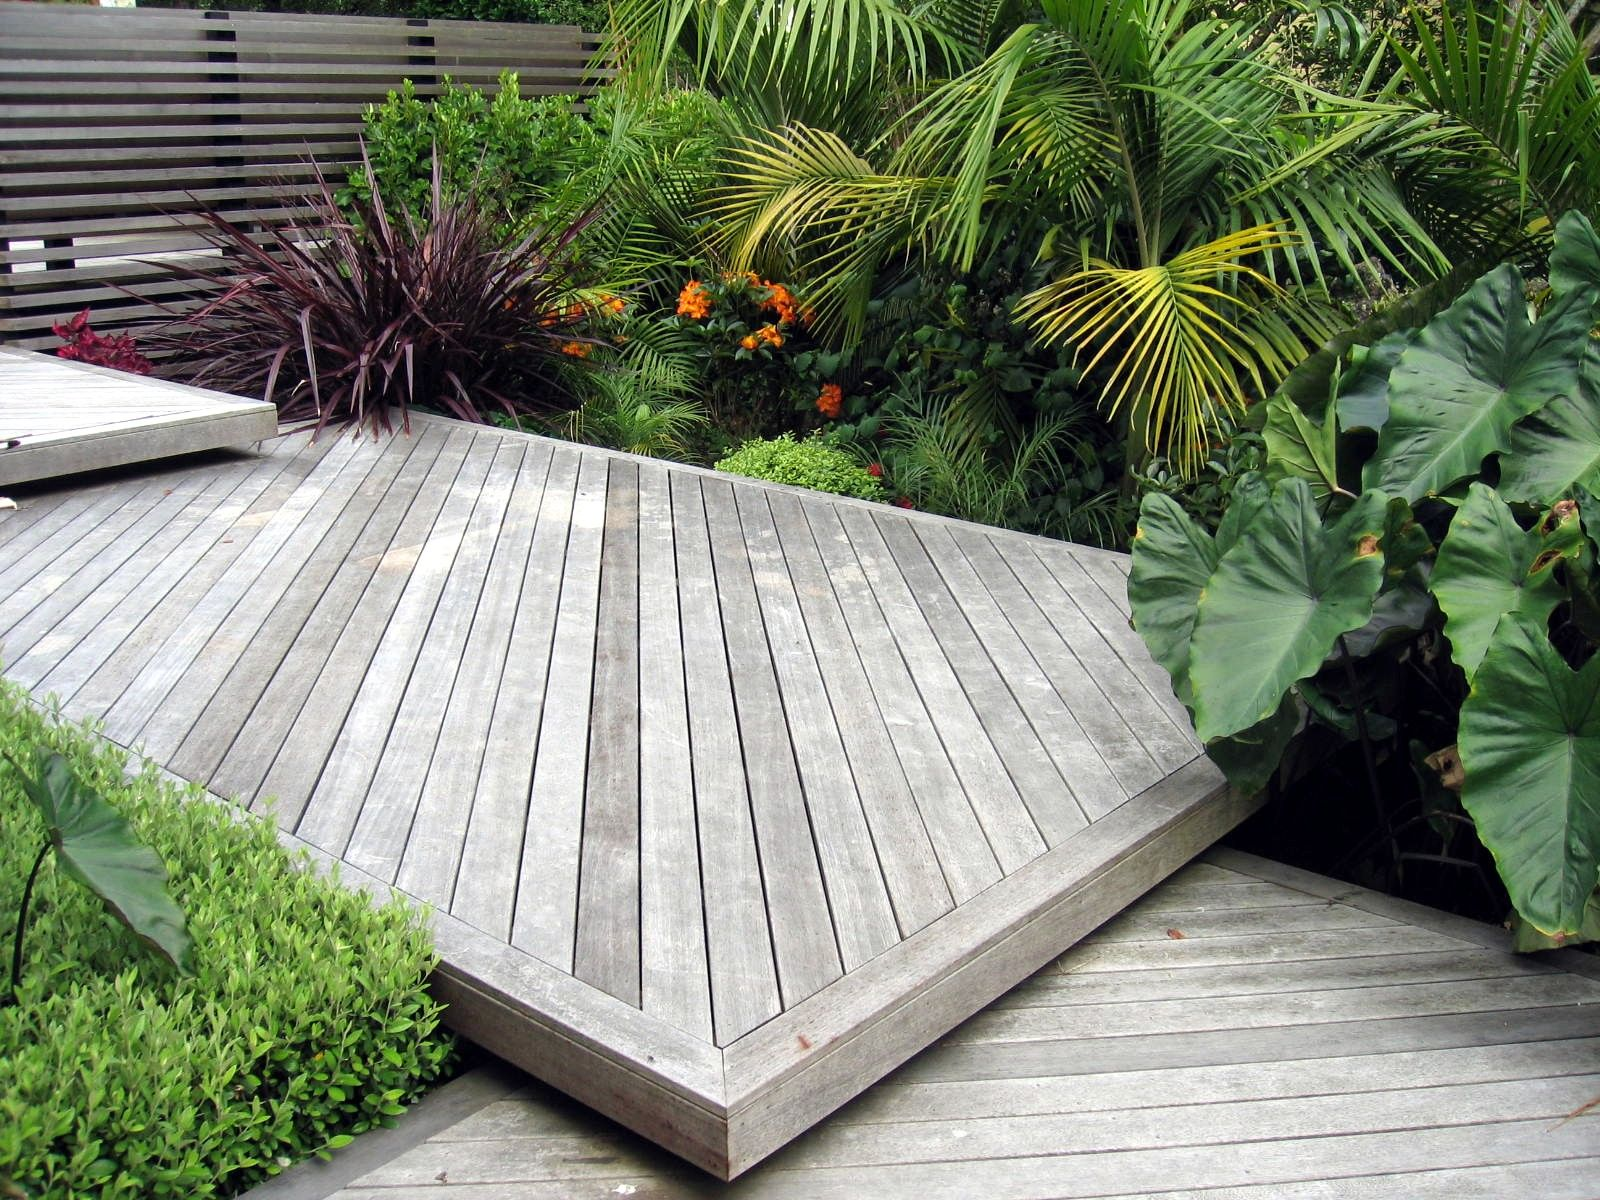 Tropical Garden Ideas Nz new zealand tropical gardens - google search | tropical gardens